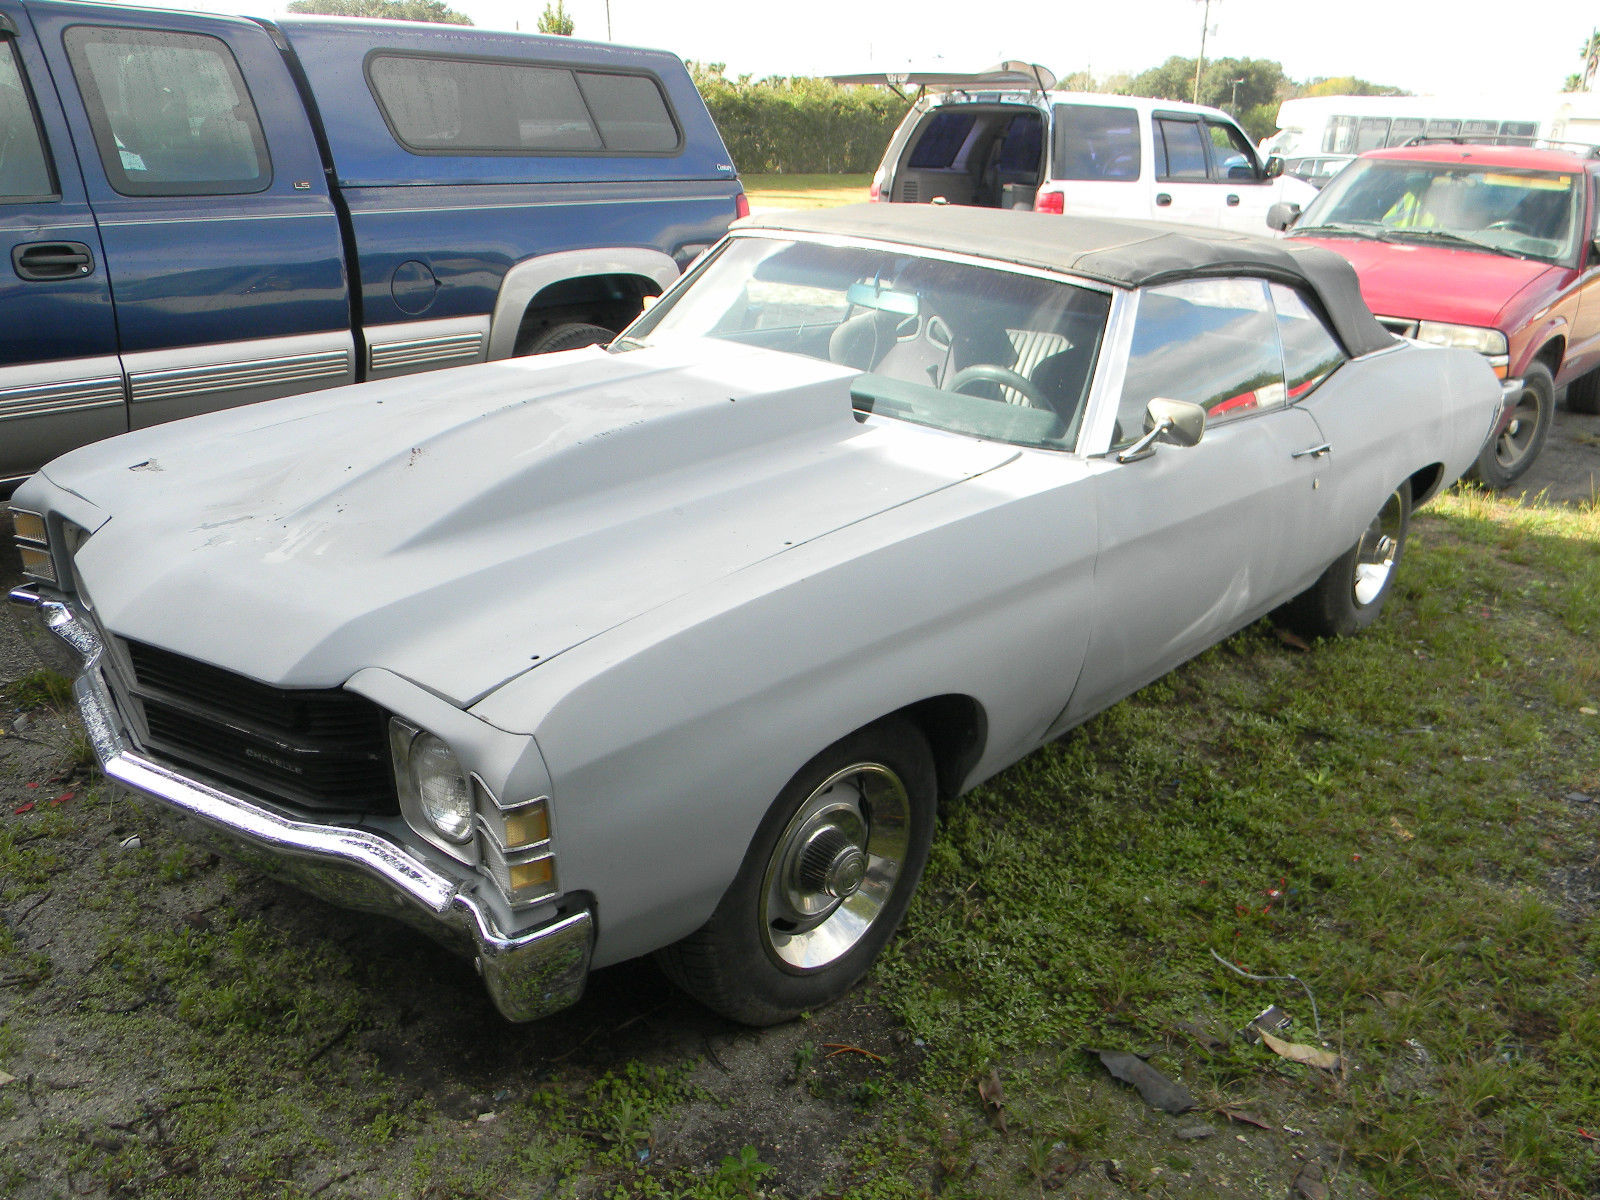 1971 chevelle convertible 383 engine project car